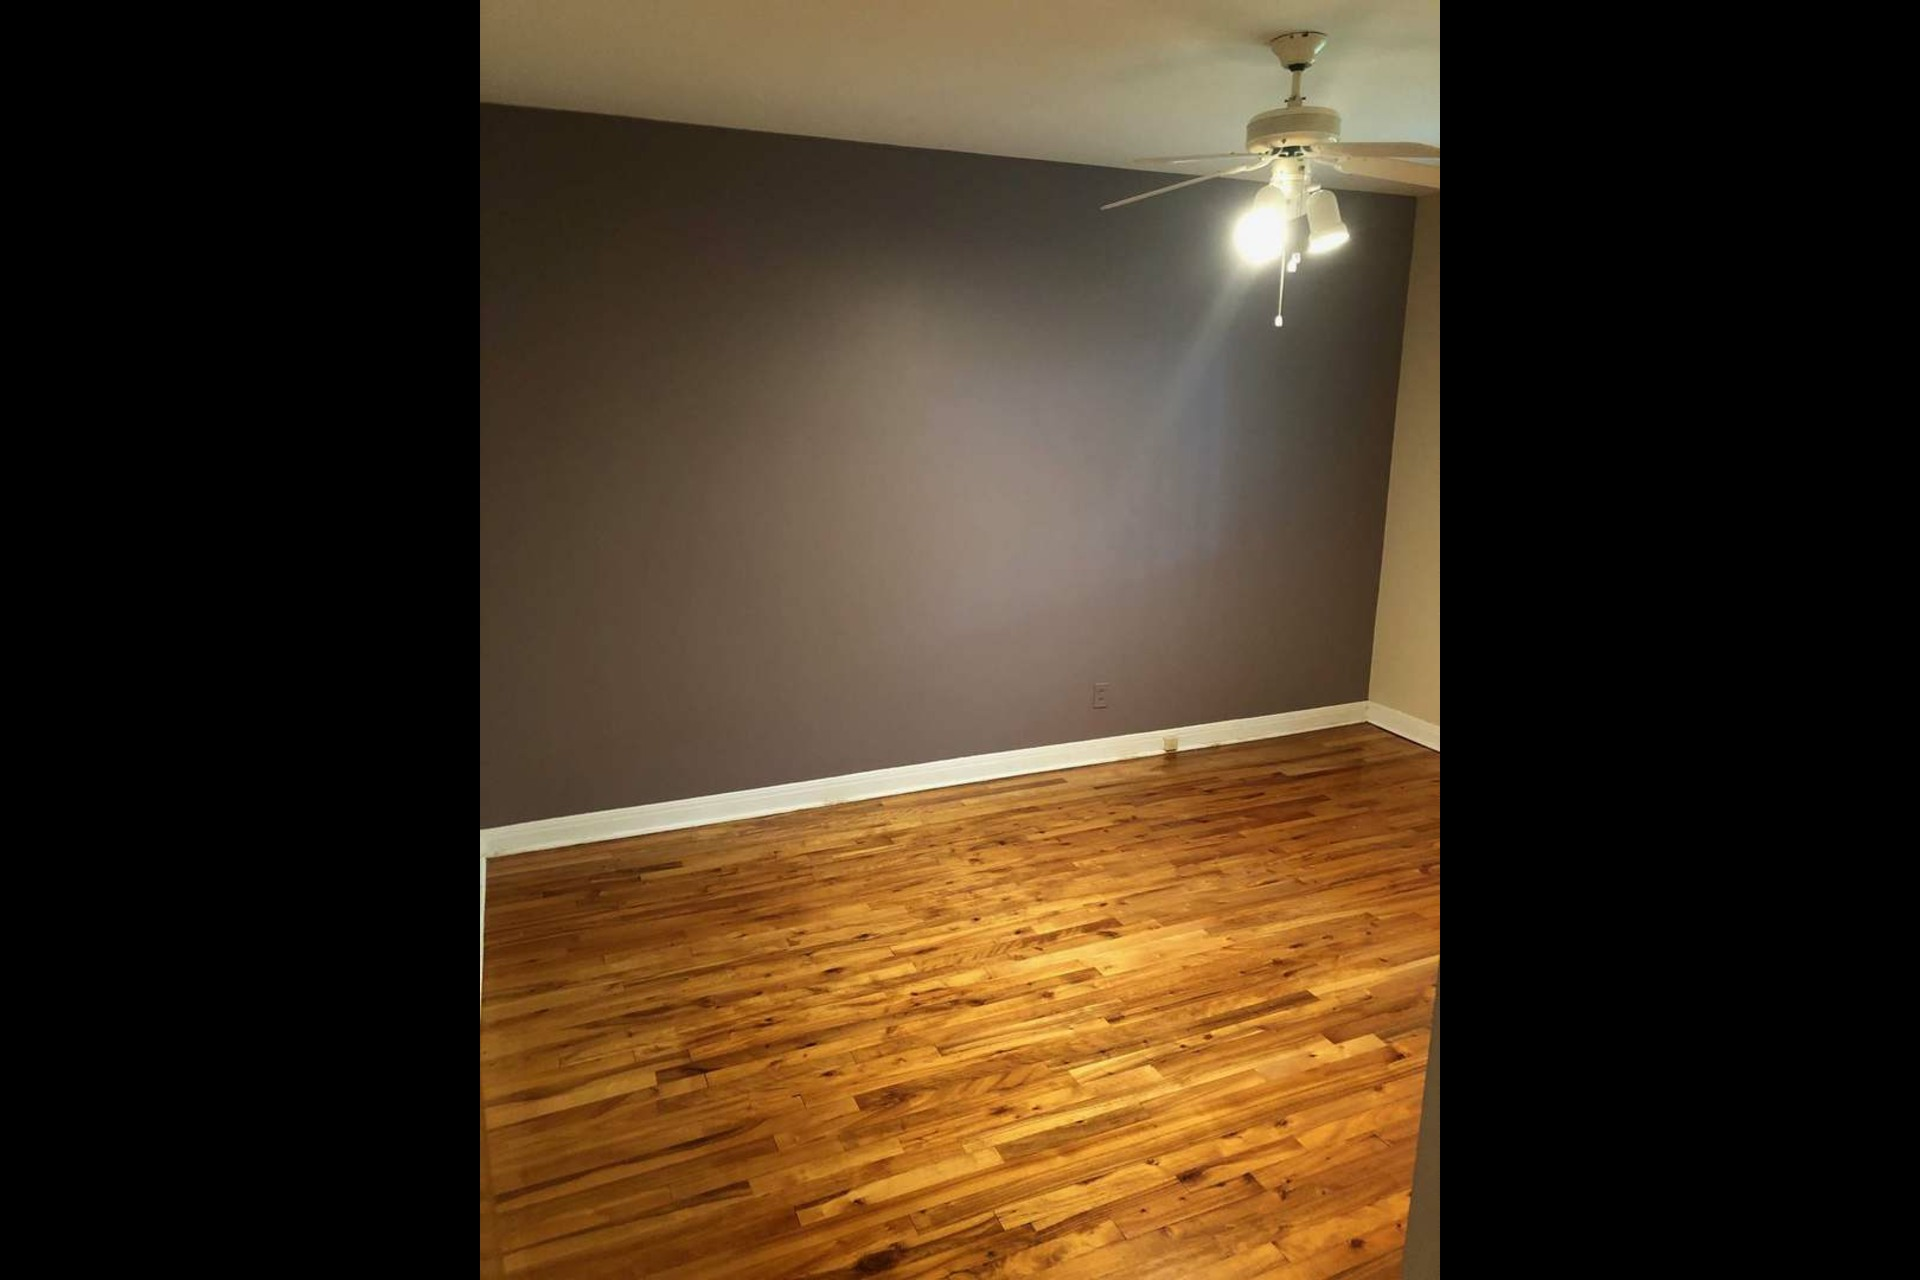 image 5 - House For rent Repentigny - 5 rooms